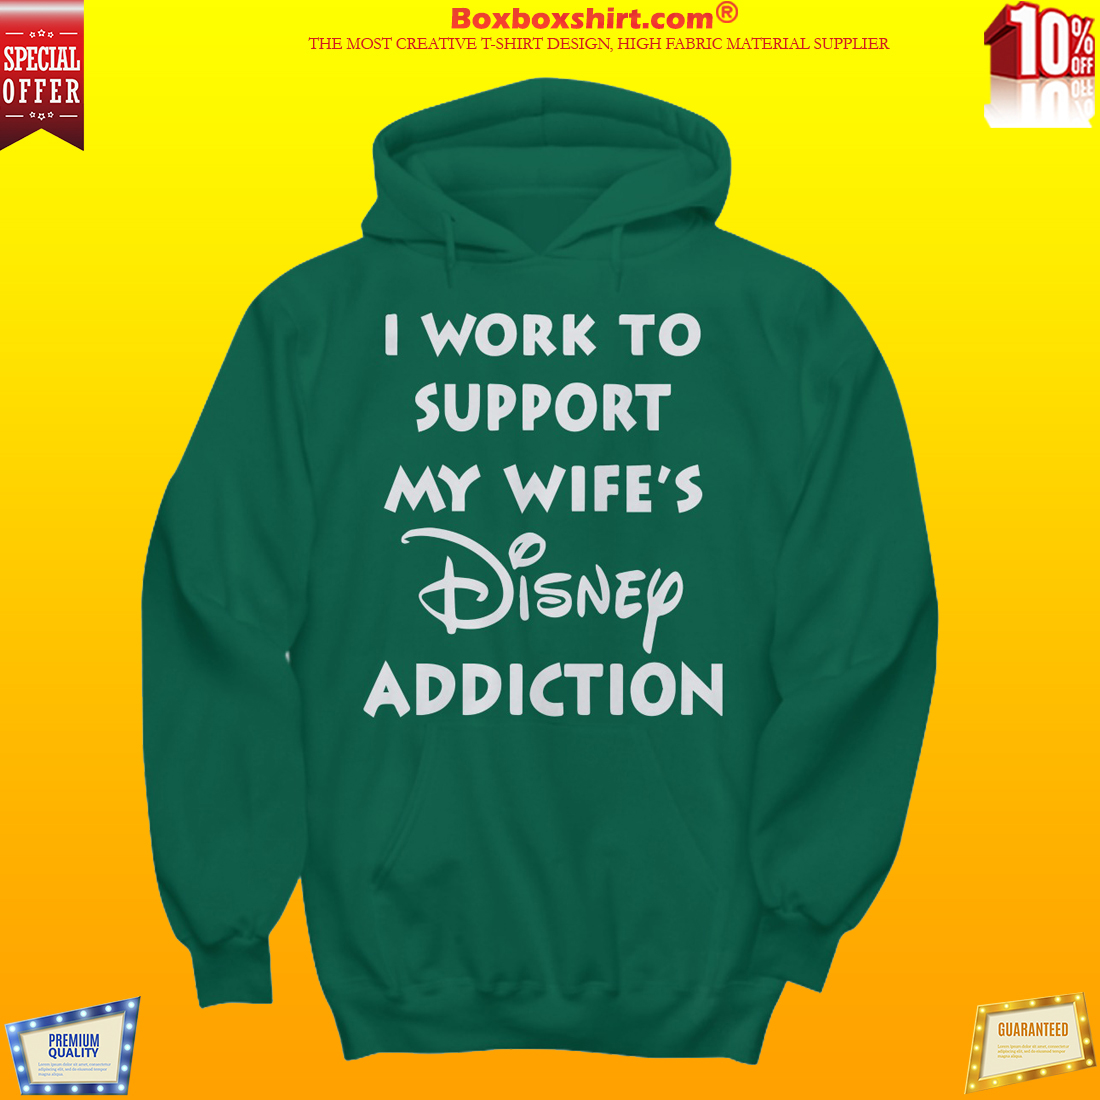 I work to support my wife Disney addiction shirt and hoodies